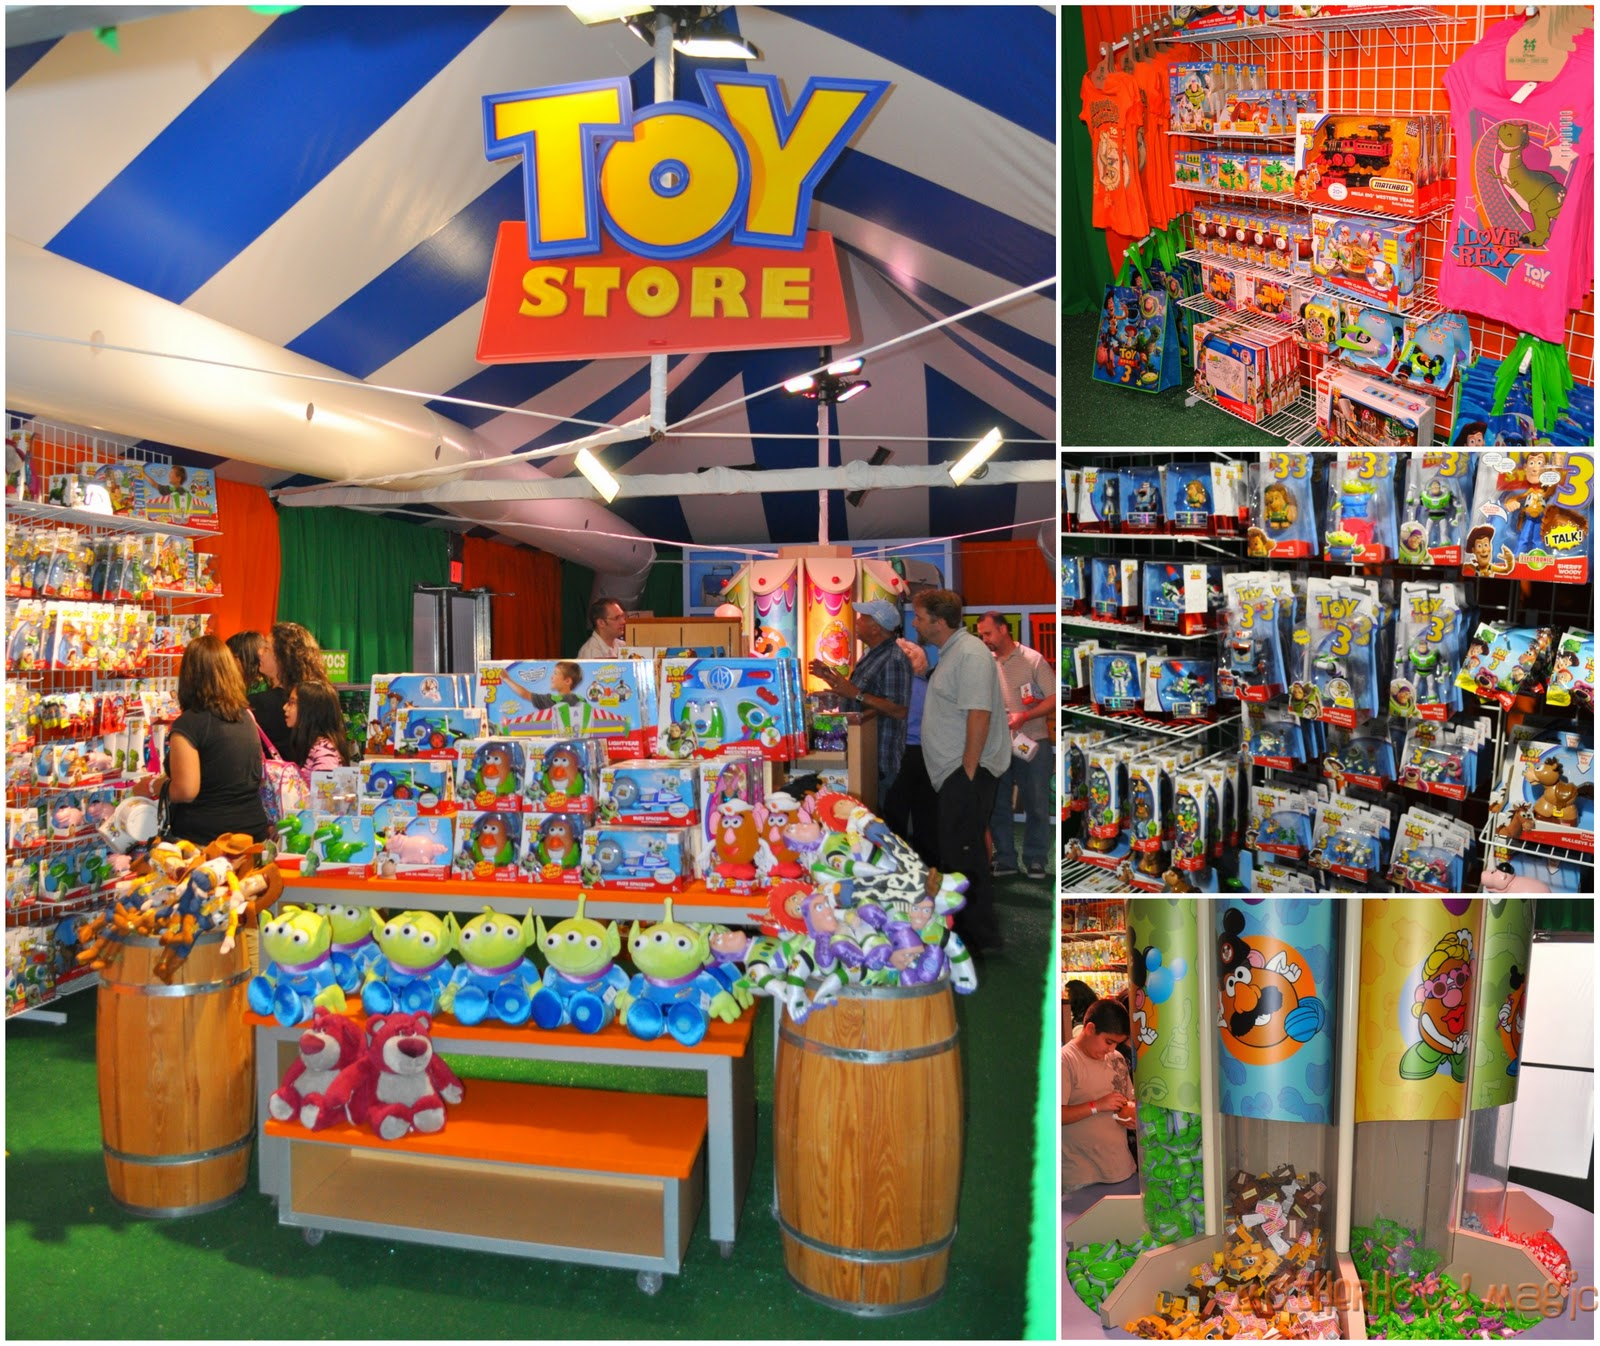 Disney Store Toys : Toys superstore